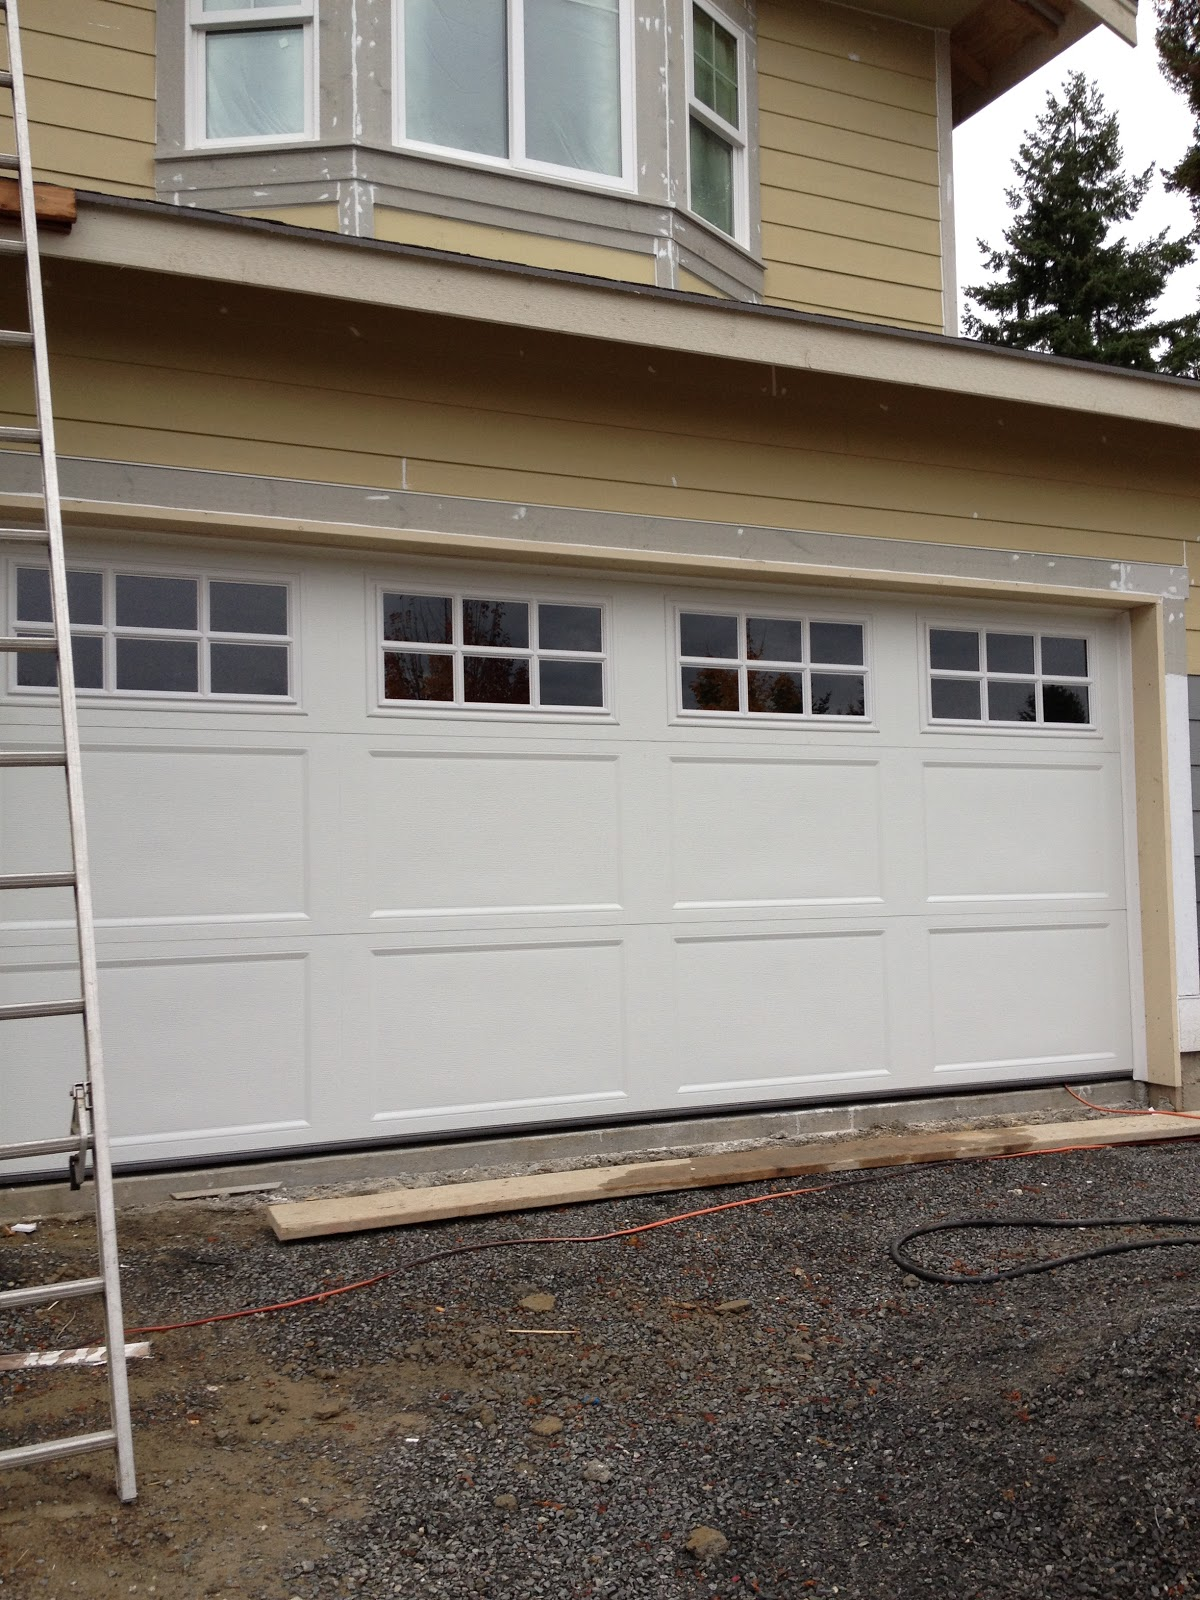 1600 #6F5F49  Home From The Ground Up: Progress Photos Garage Door Installation pic Installed Garage Doors 37211200